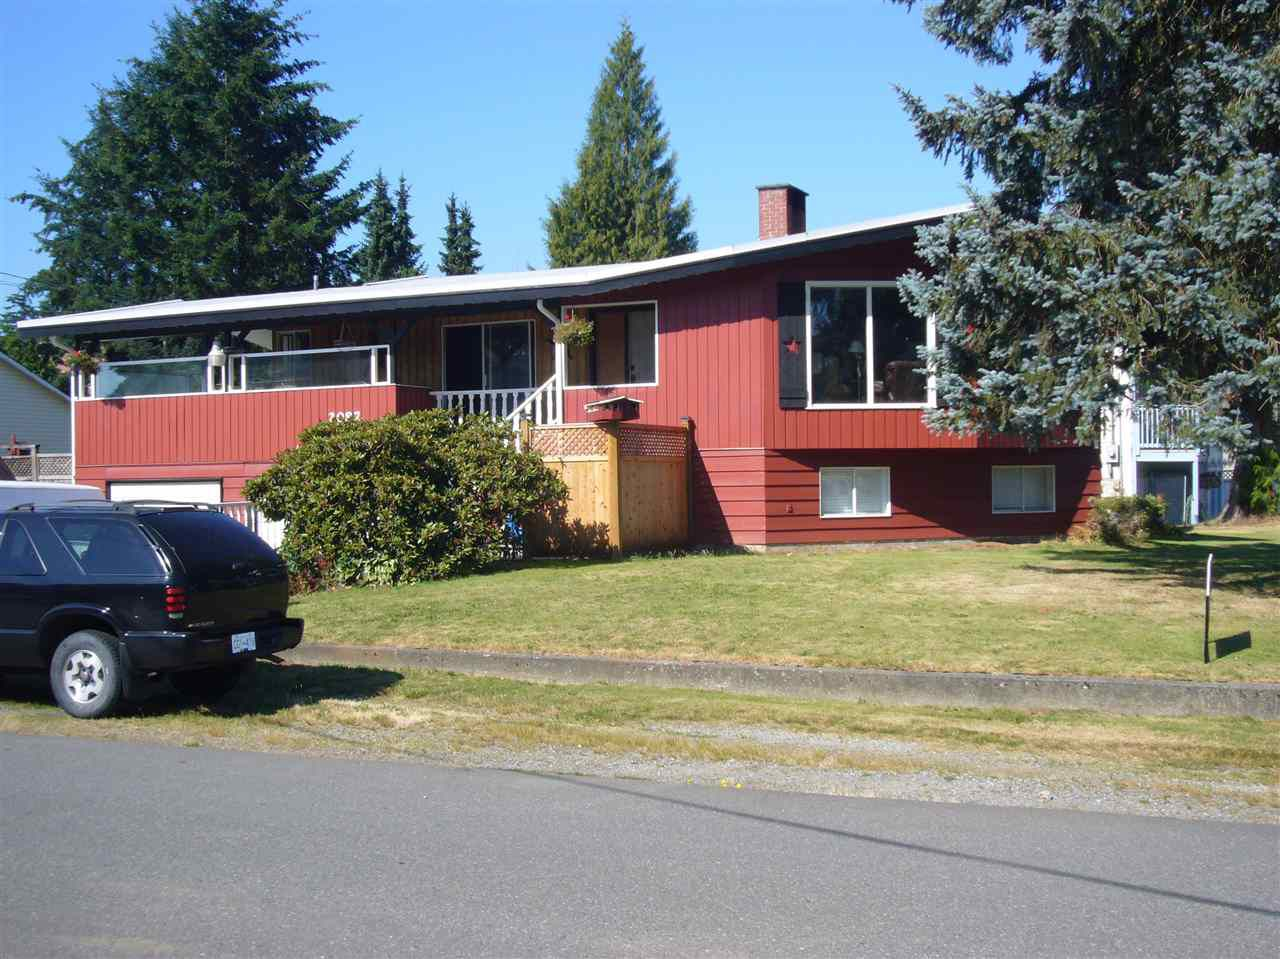 Main Photo: 2087 WILEROSE Street in Abbotsford: Central Abbotsford House for sale : MLS®# R2096160